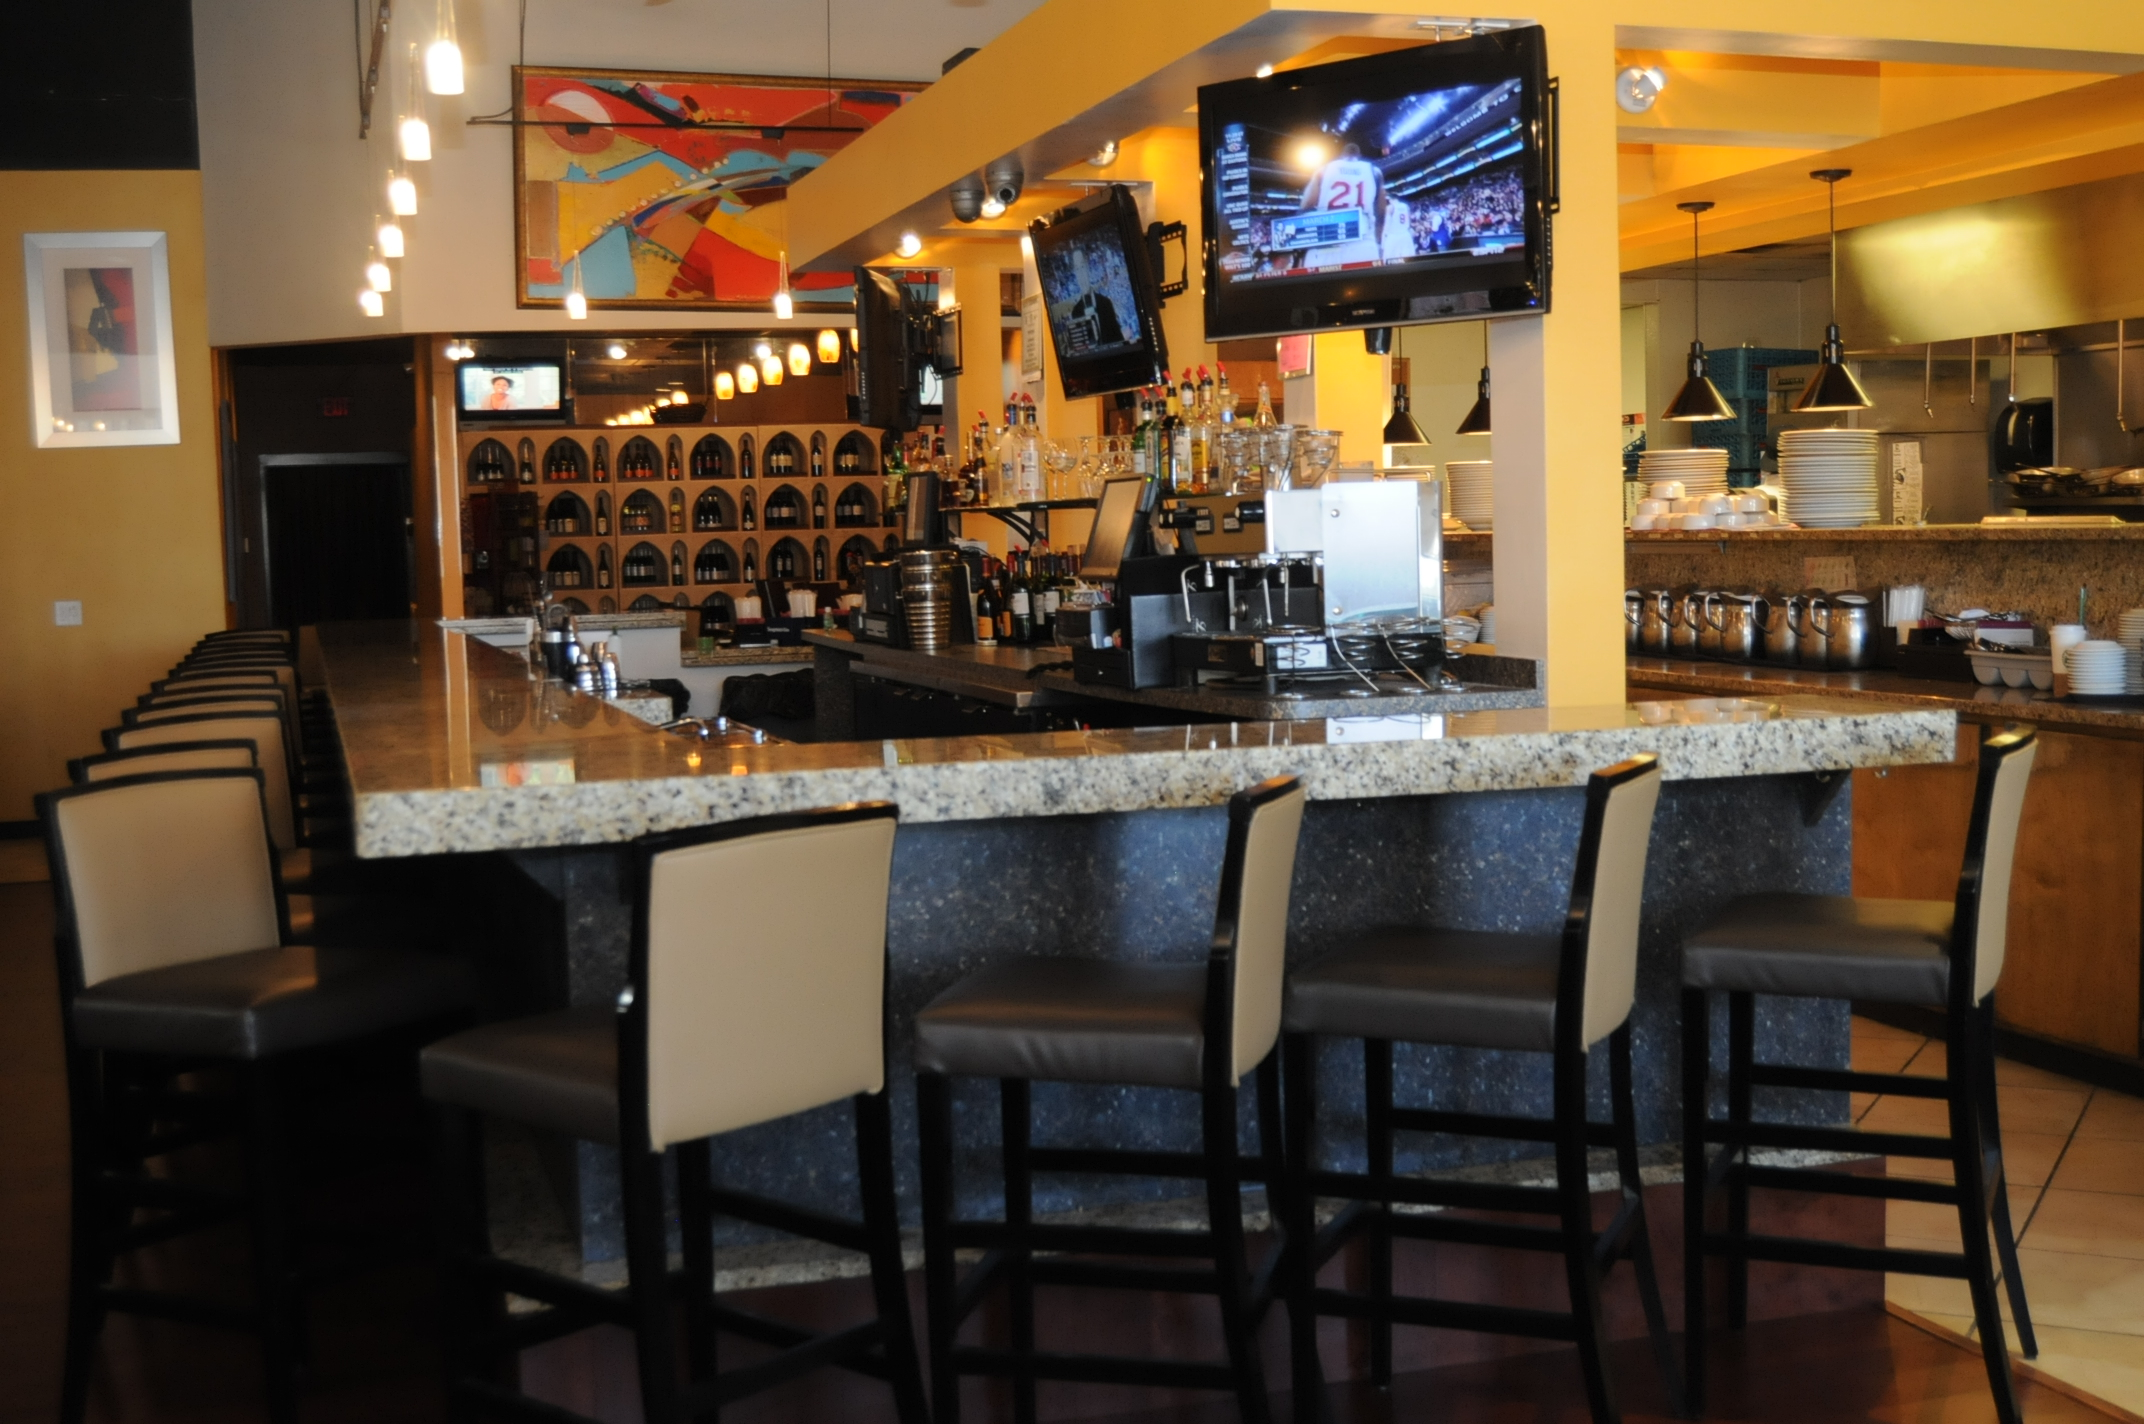 Atlanta Restaurant and Bar for sale offers Modern American Cuisine